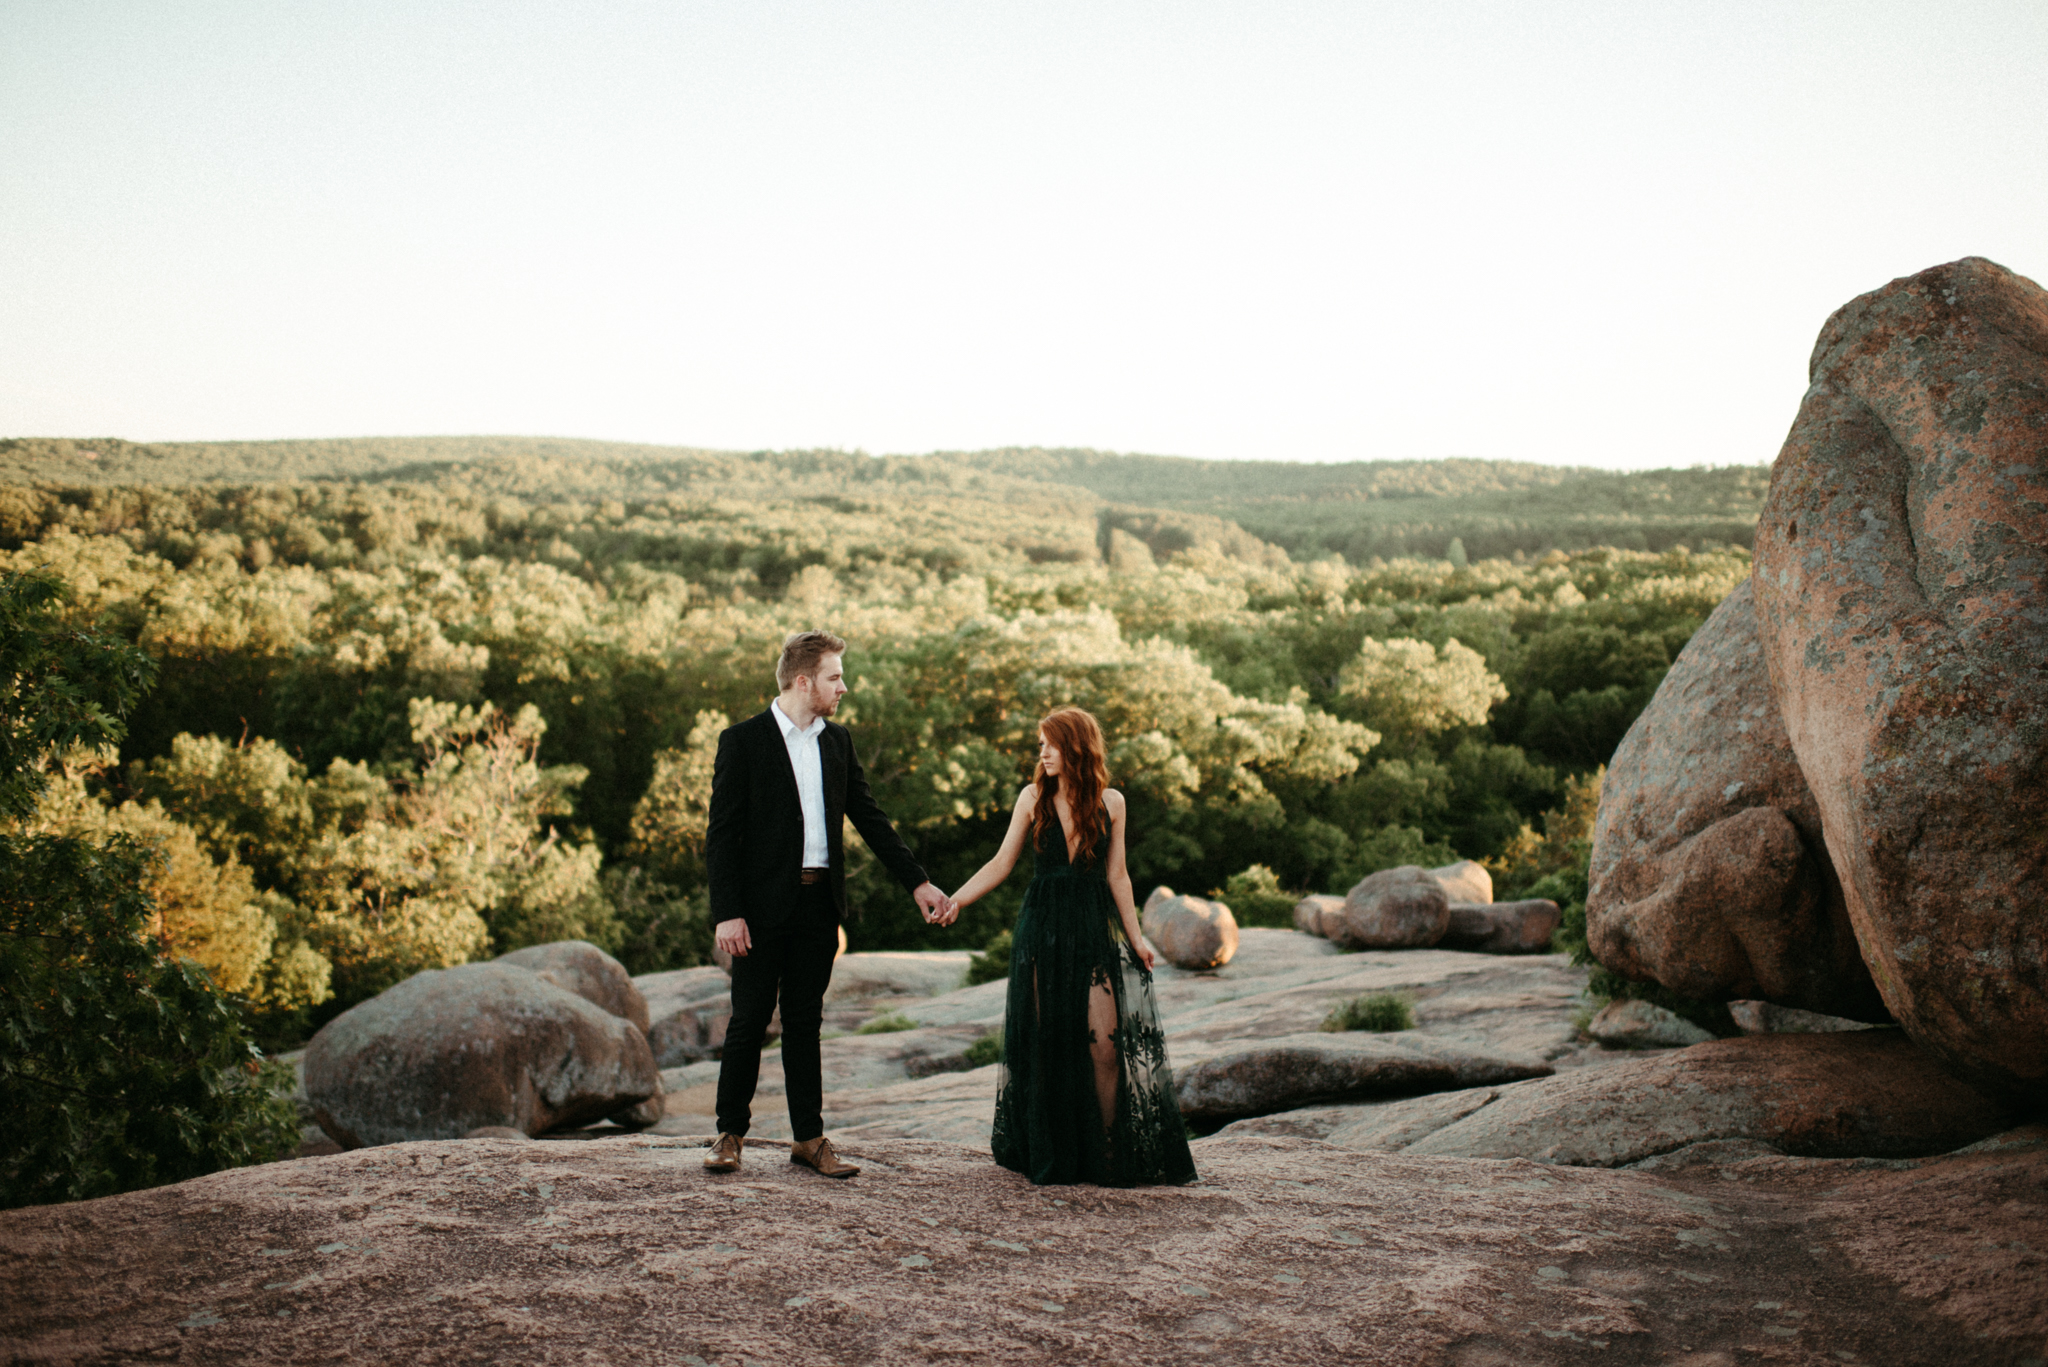 Zach and Rosalie - Missouri Wedding Photographer - Elephant rocks state park anniversary session -7031.jpg